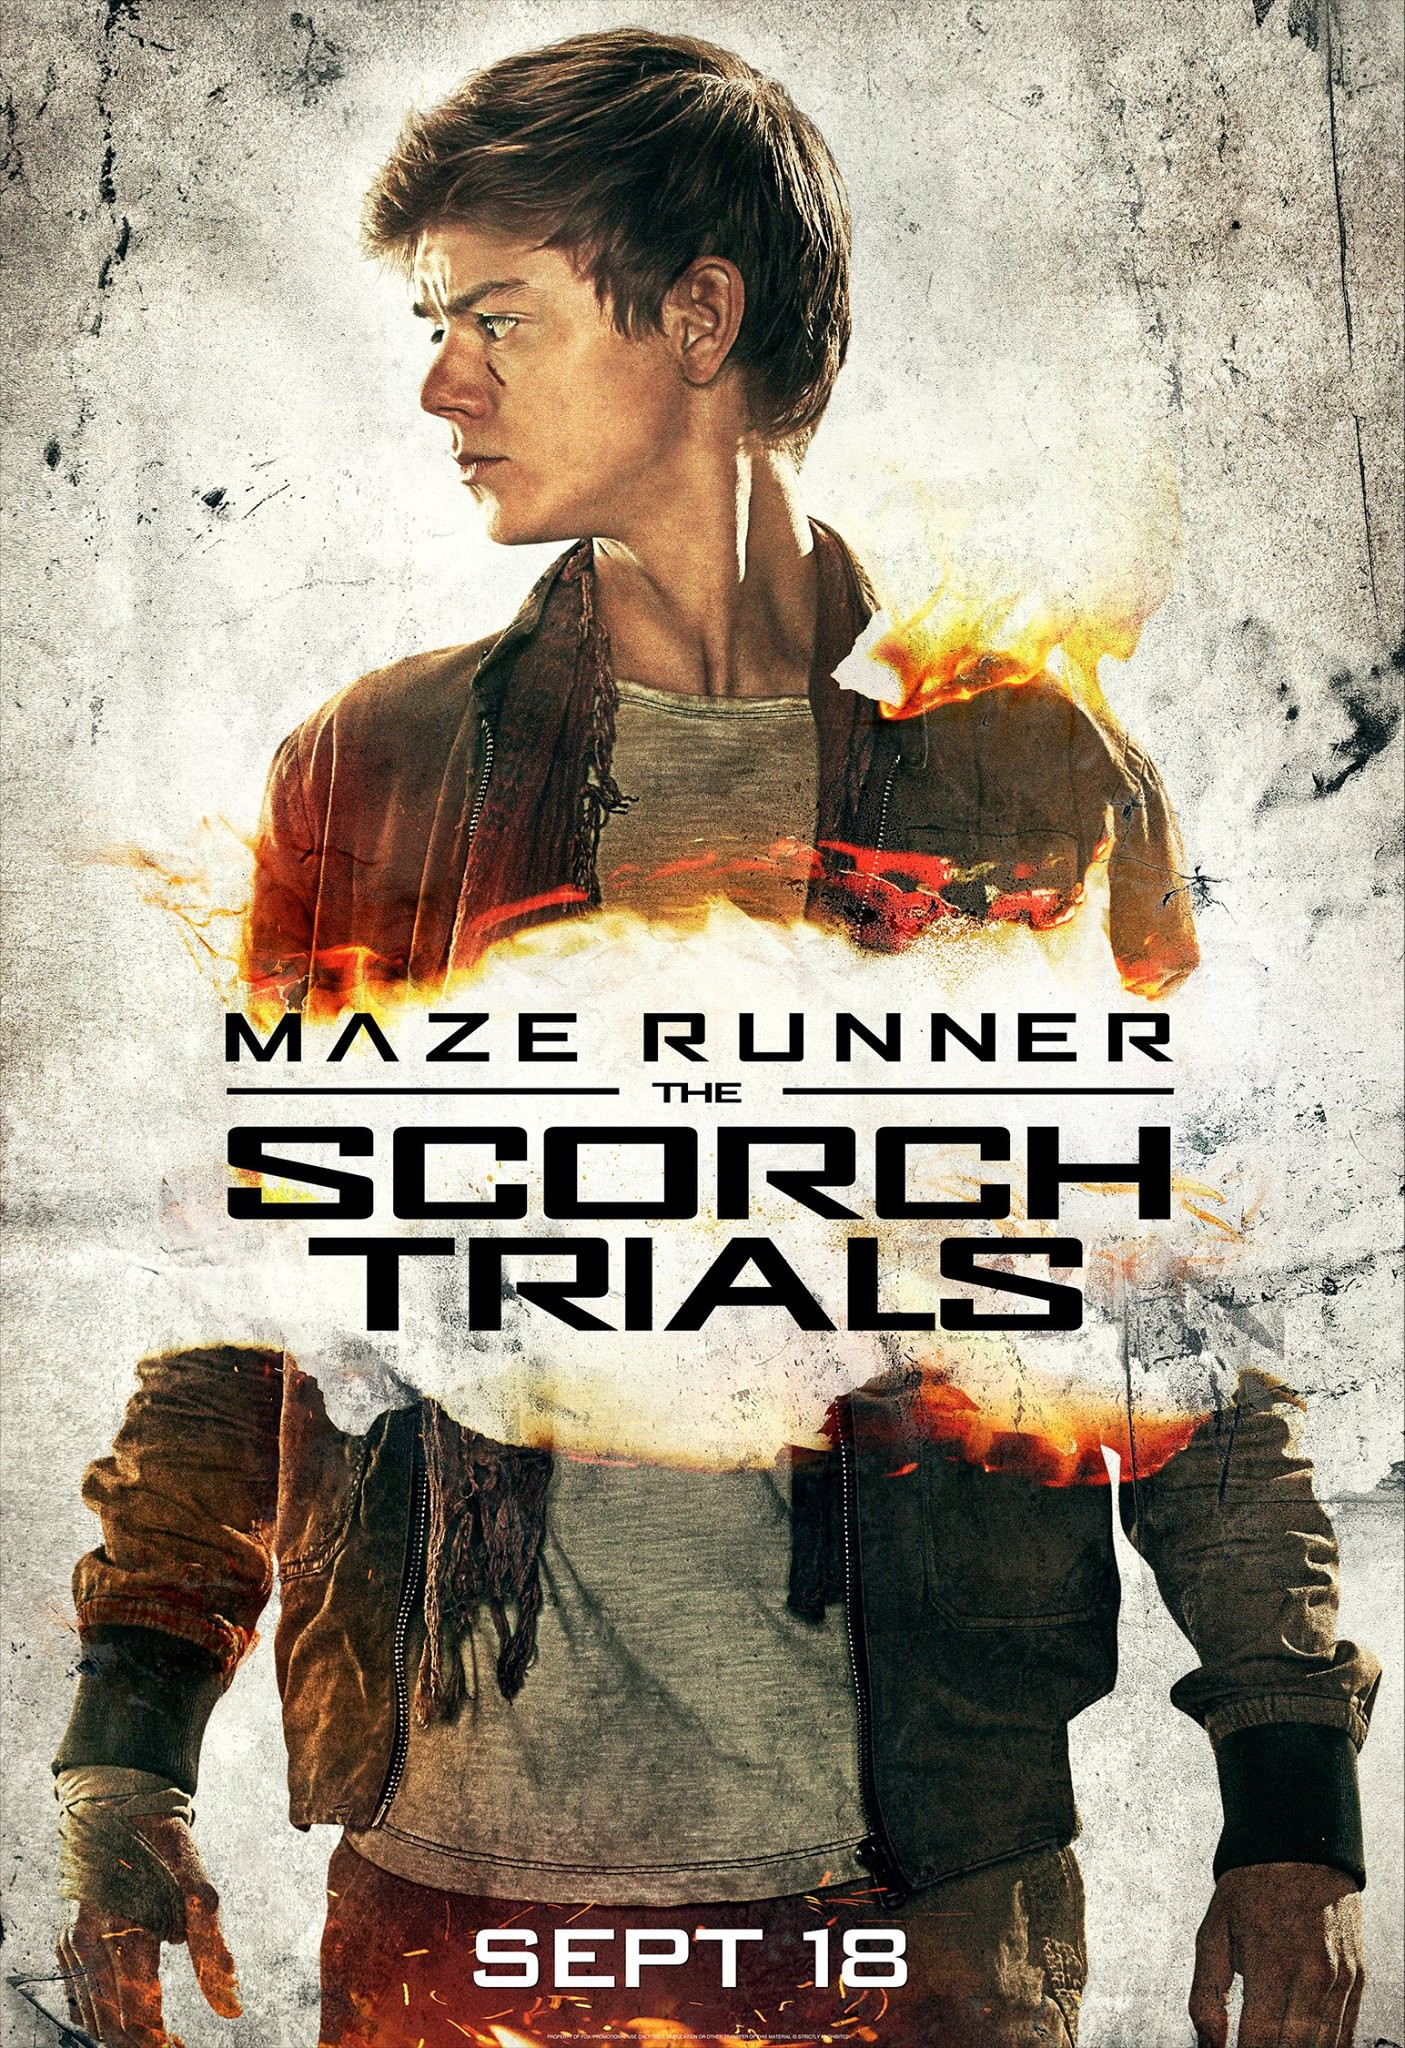 Maze Runner The Scorch Trials-23Julho2015-02